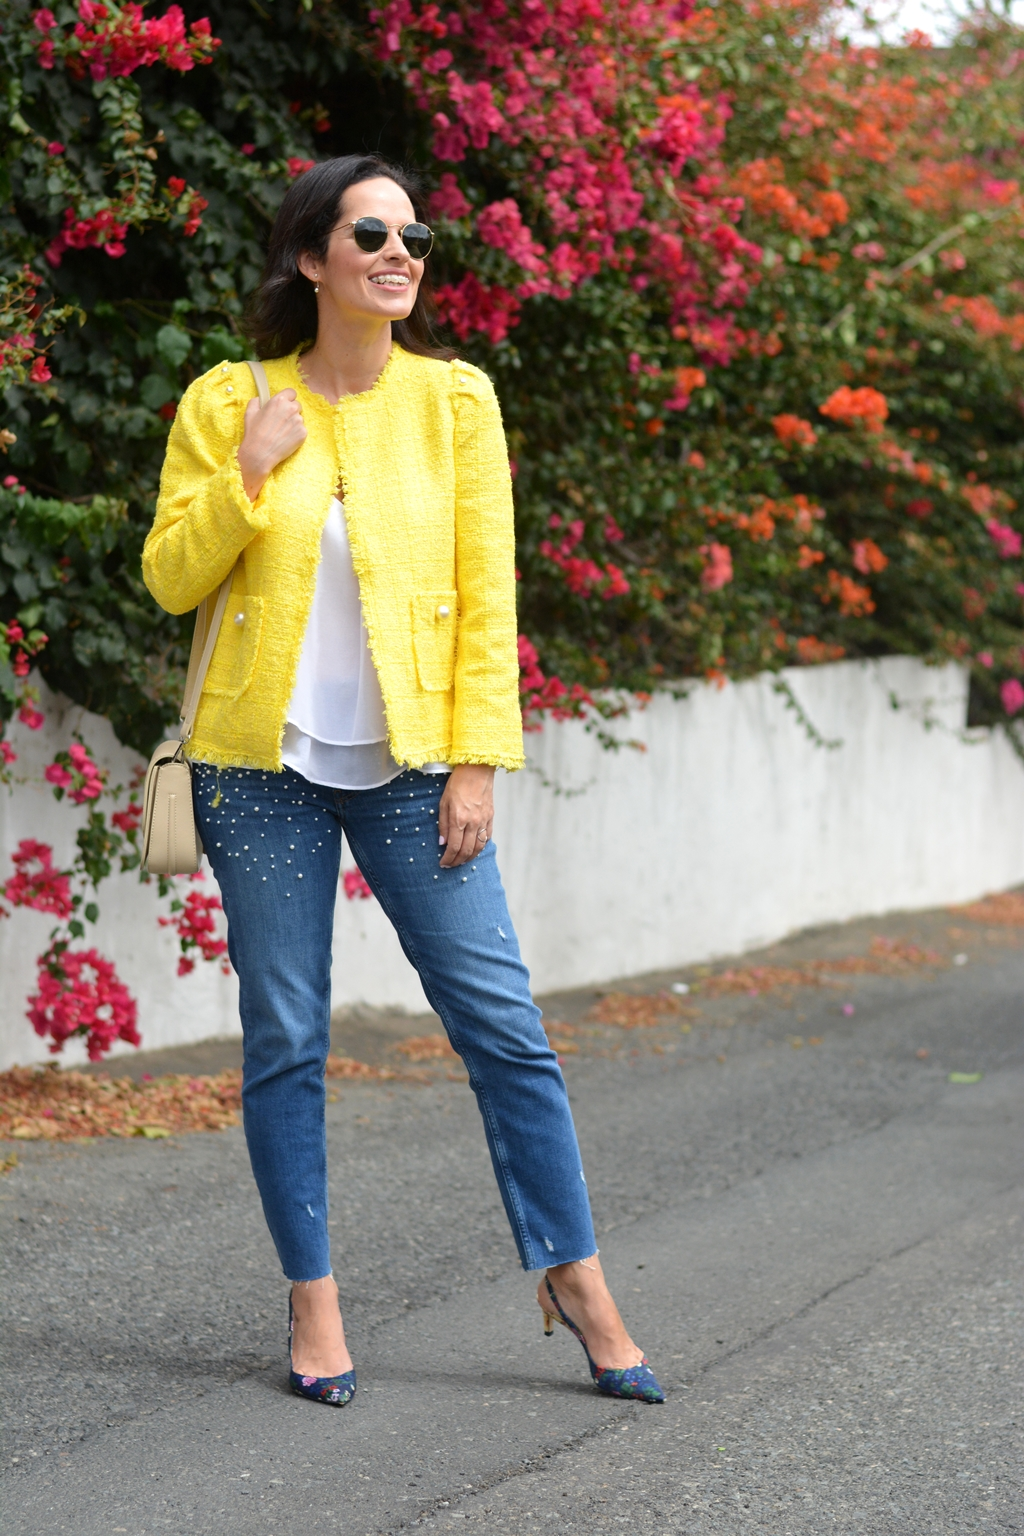 zara-yellow-tweed-jacket-daily-look